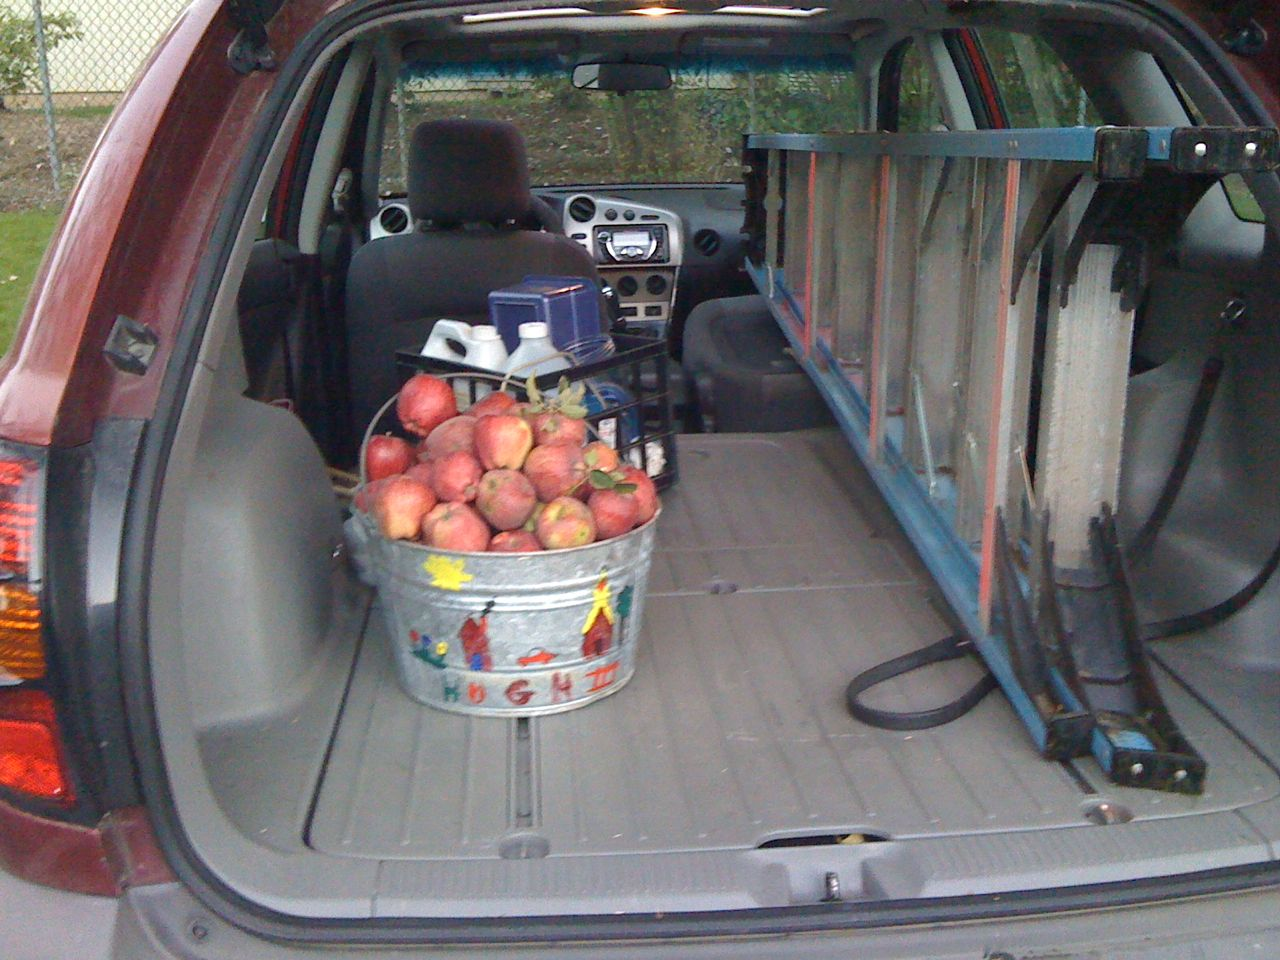 Bucket full of apples from church.